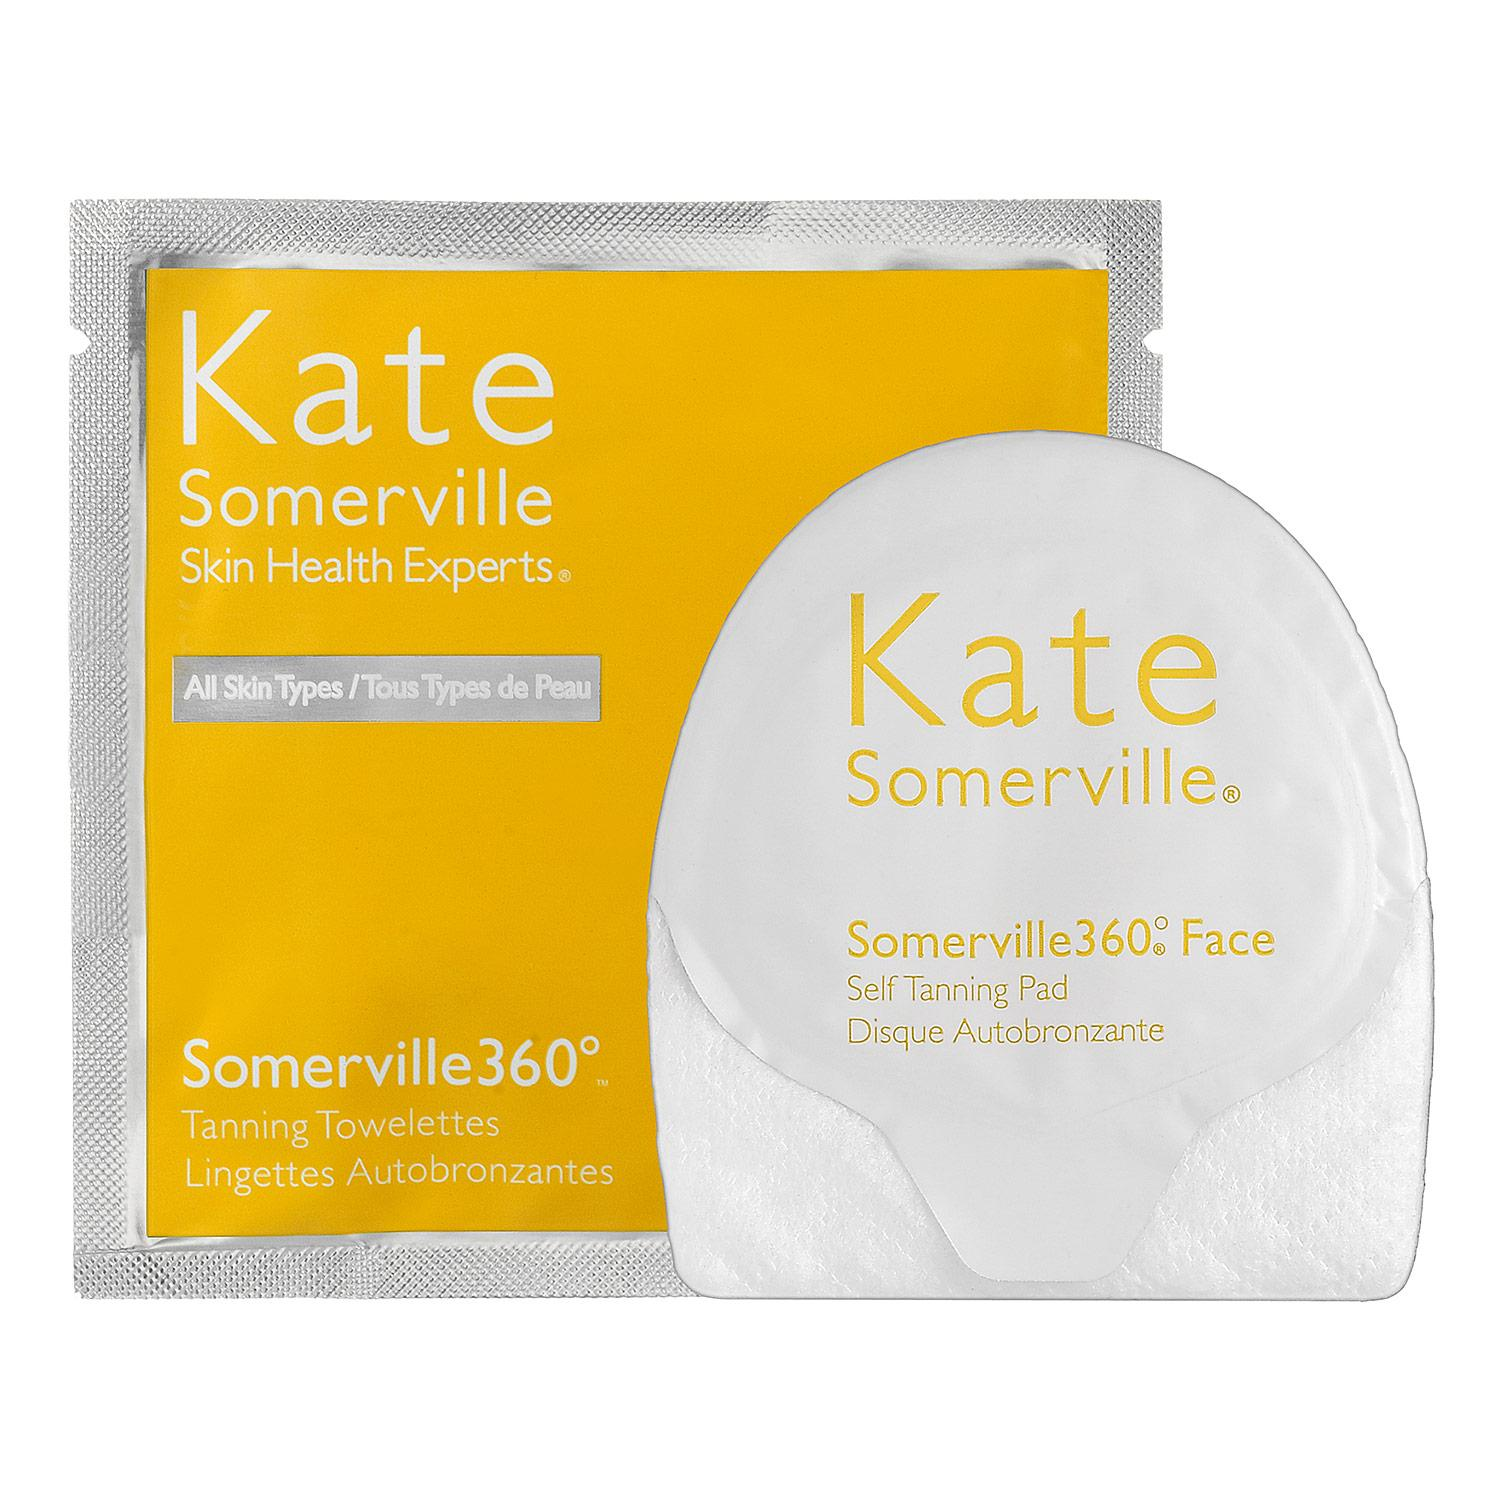 Somerville 360°® Face & Body Self Tanning Pad Duo